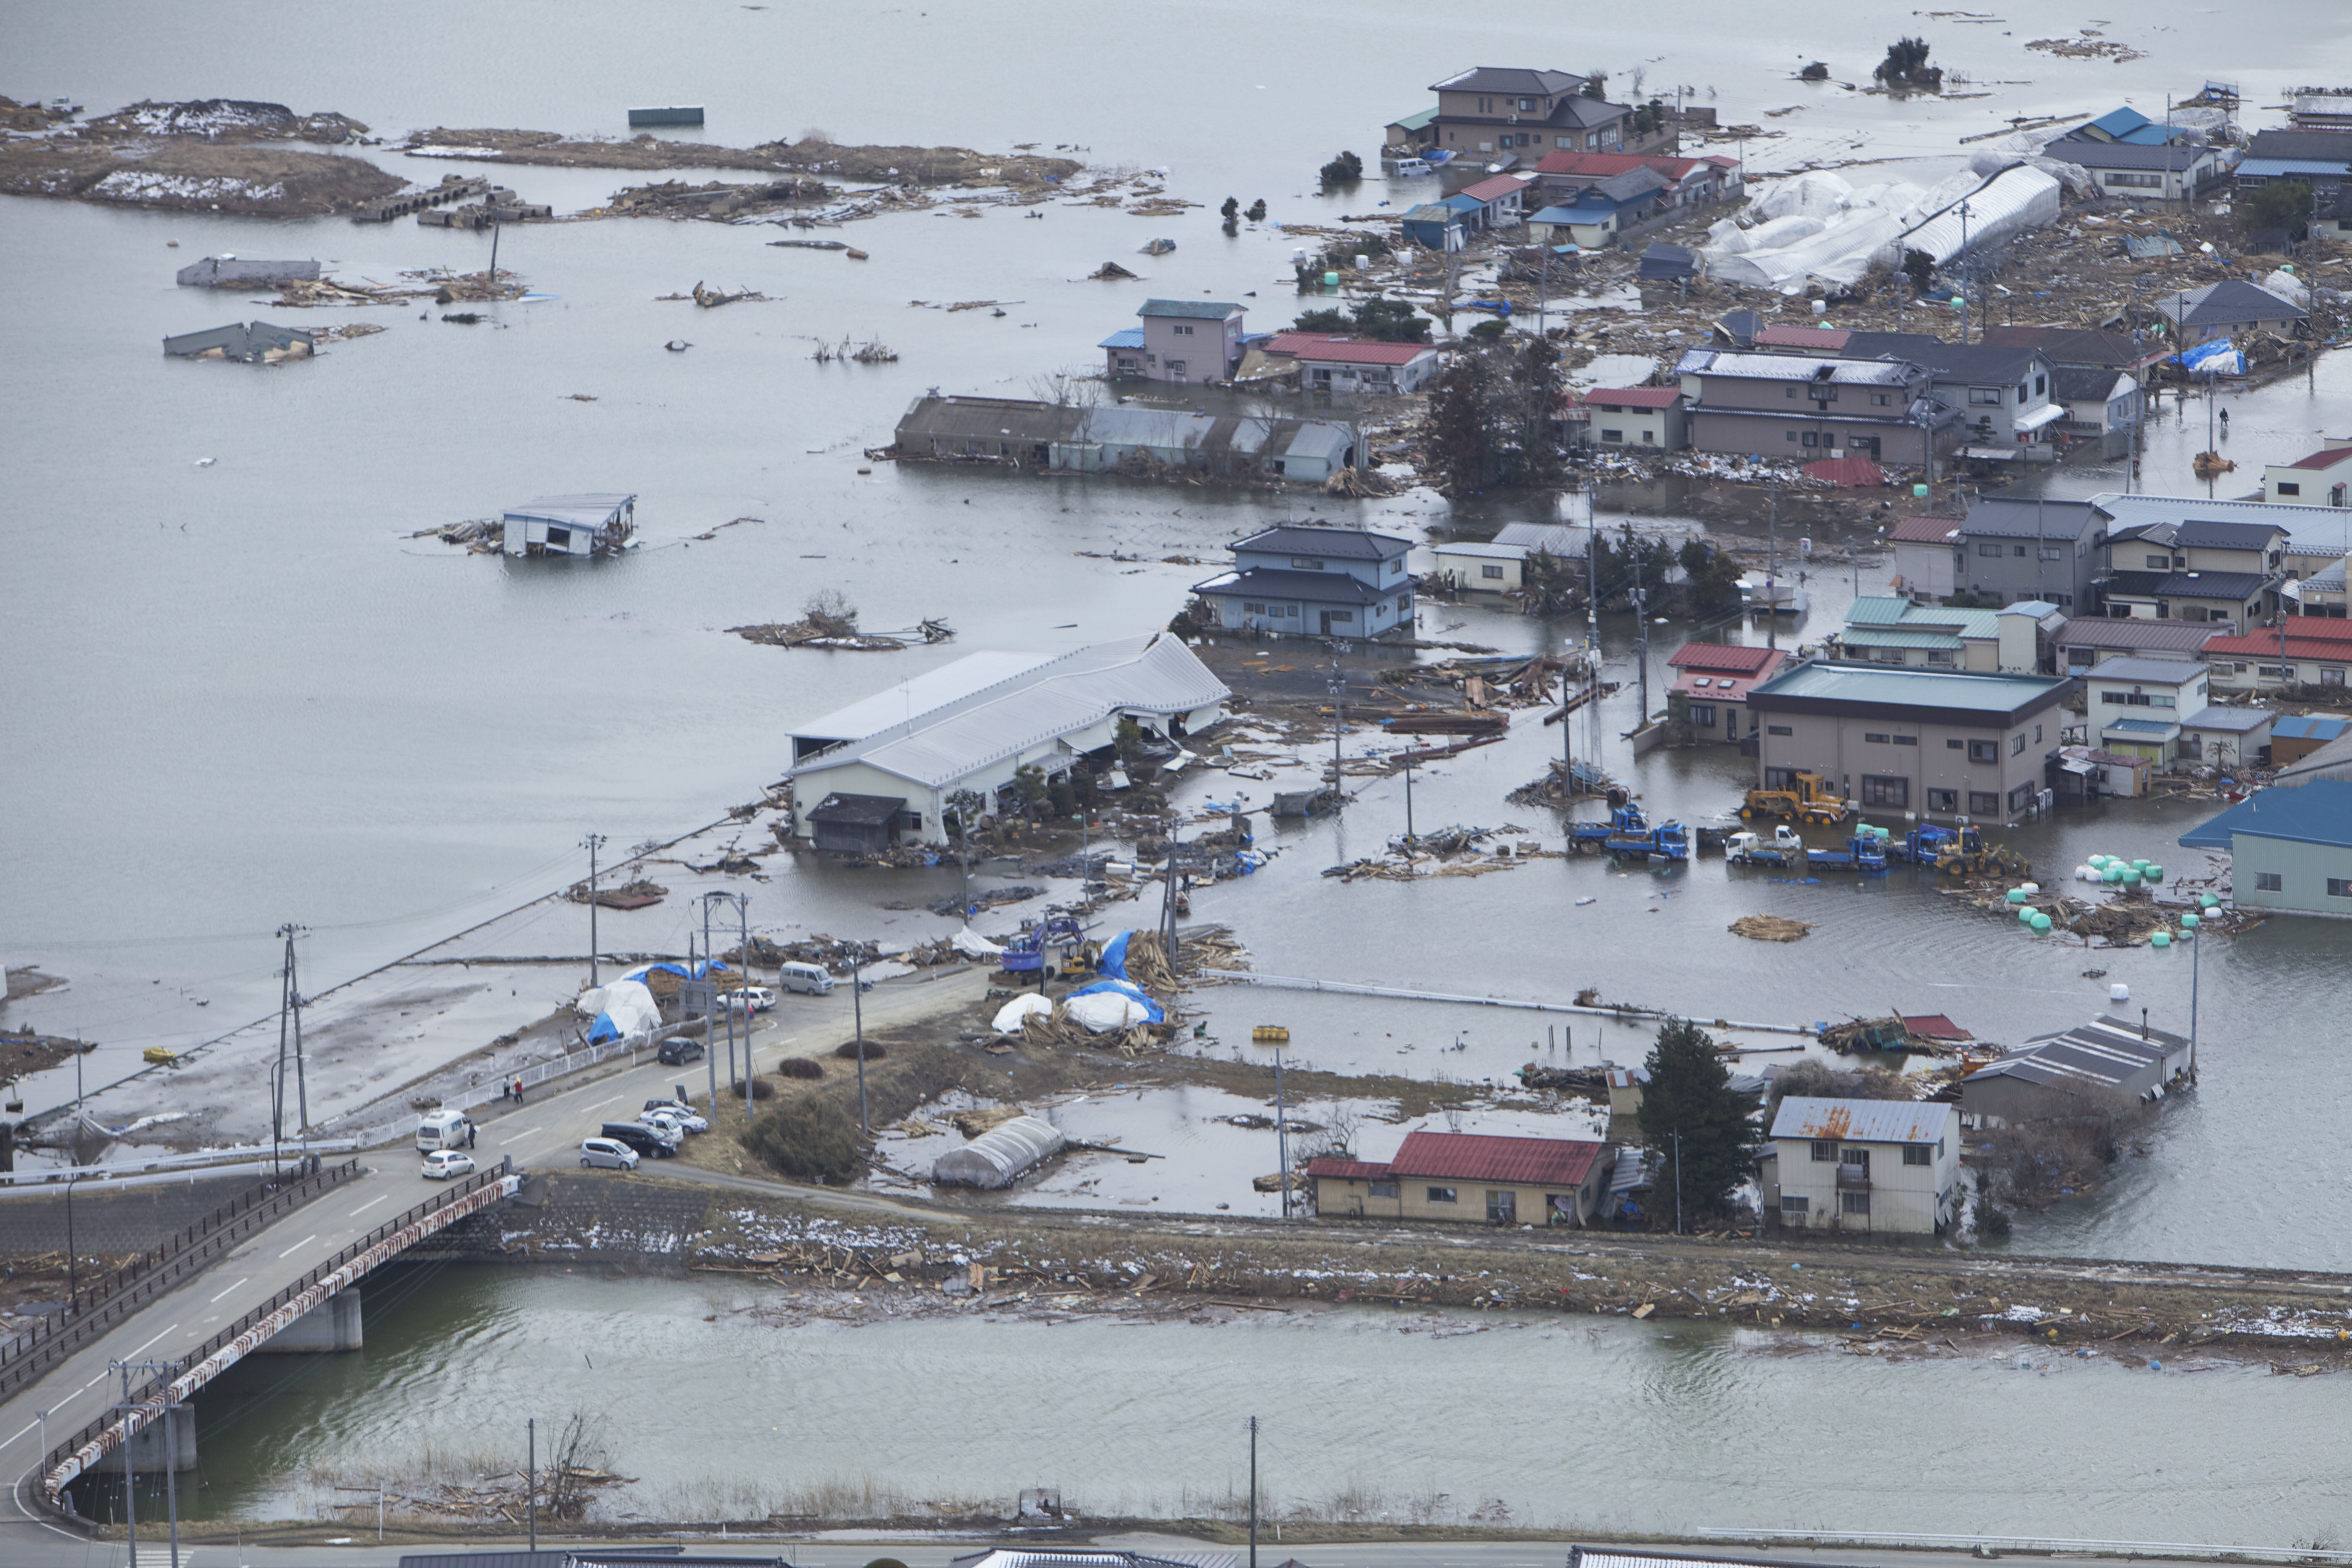 An aerial view of Ishinomaki, Japan, a week after a 9.0 magnitude earthquake and subsequent tsunami devastated the area. Showing flooding, damaged buildings and roads.